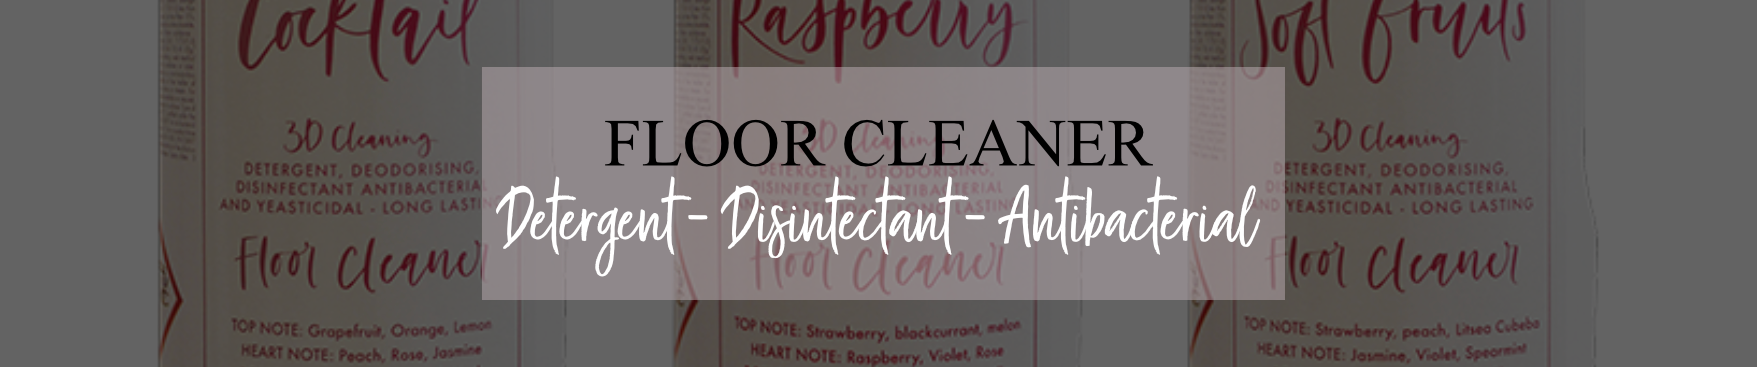 PAGE Title - Floor cleaner.png